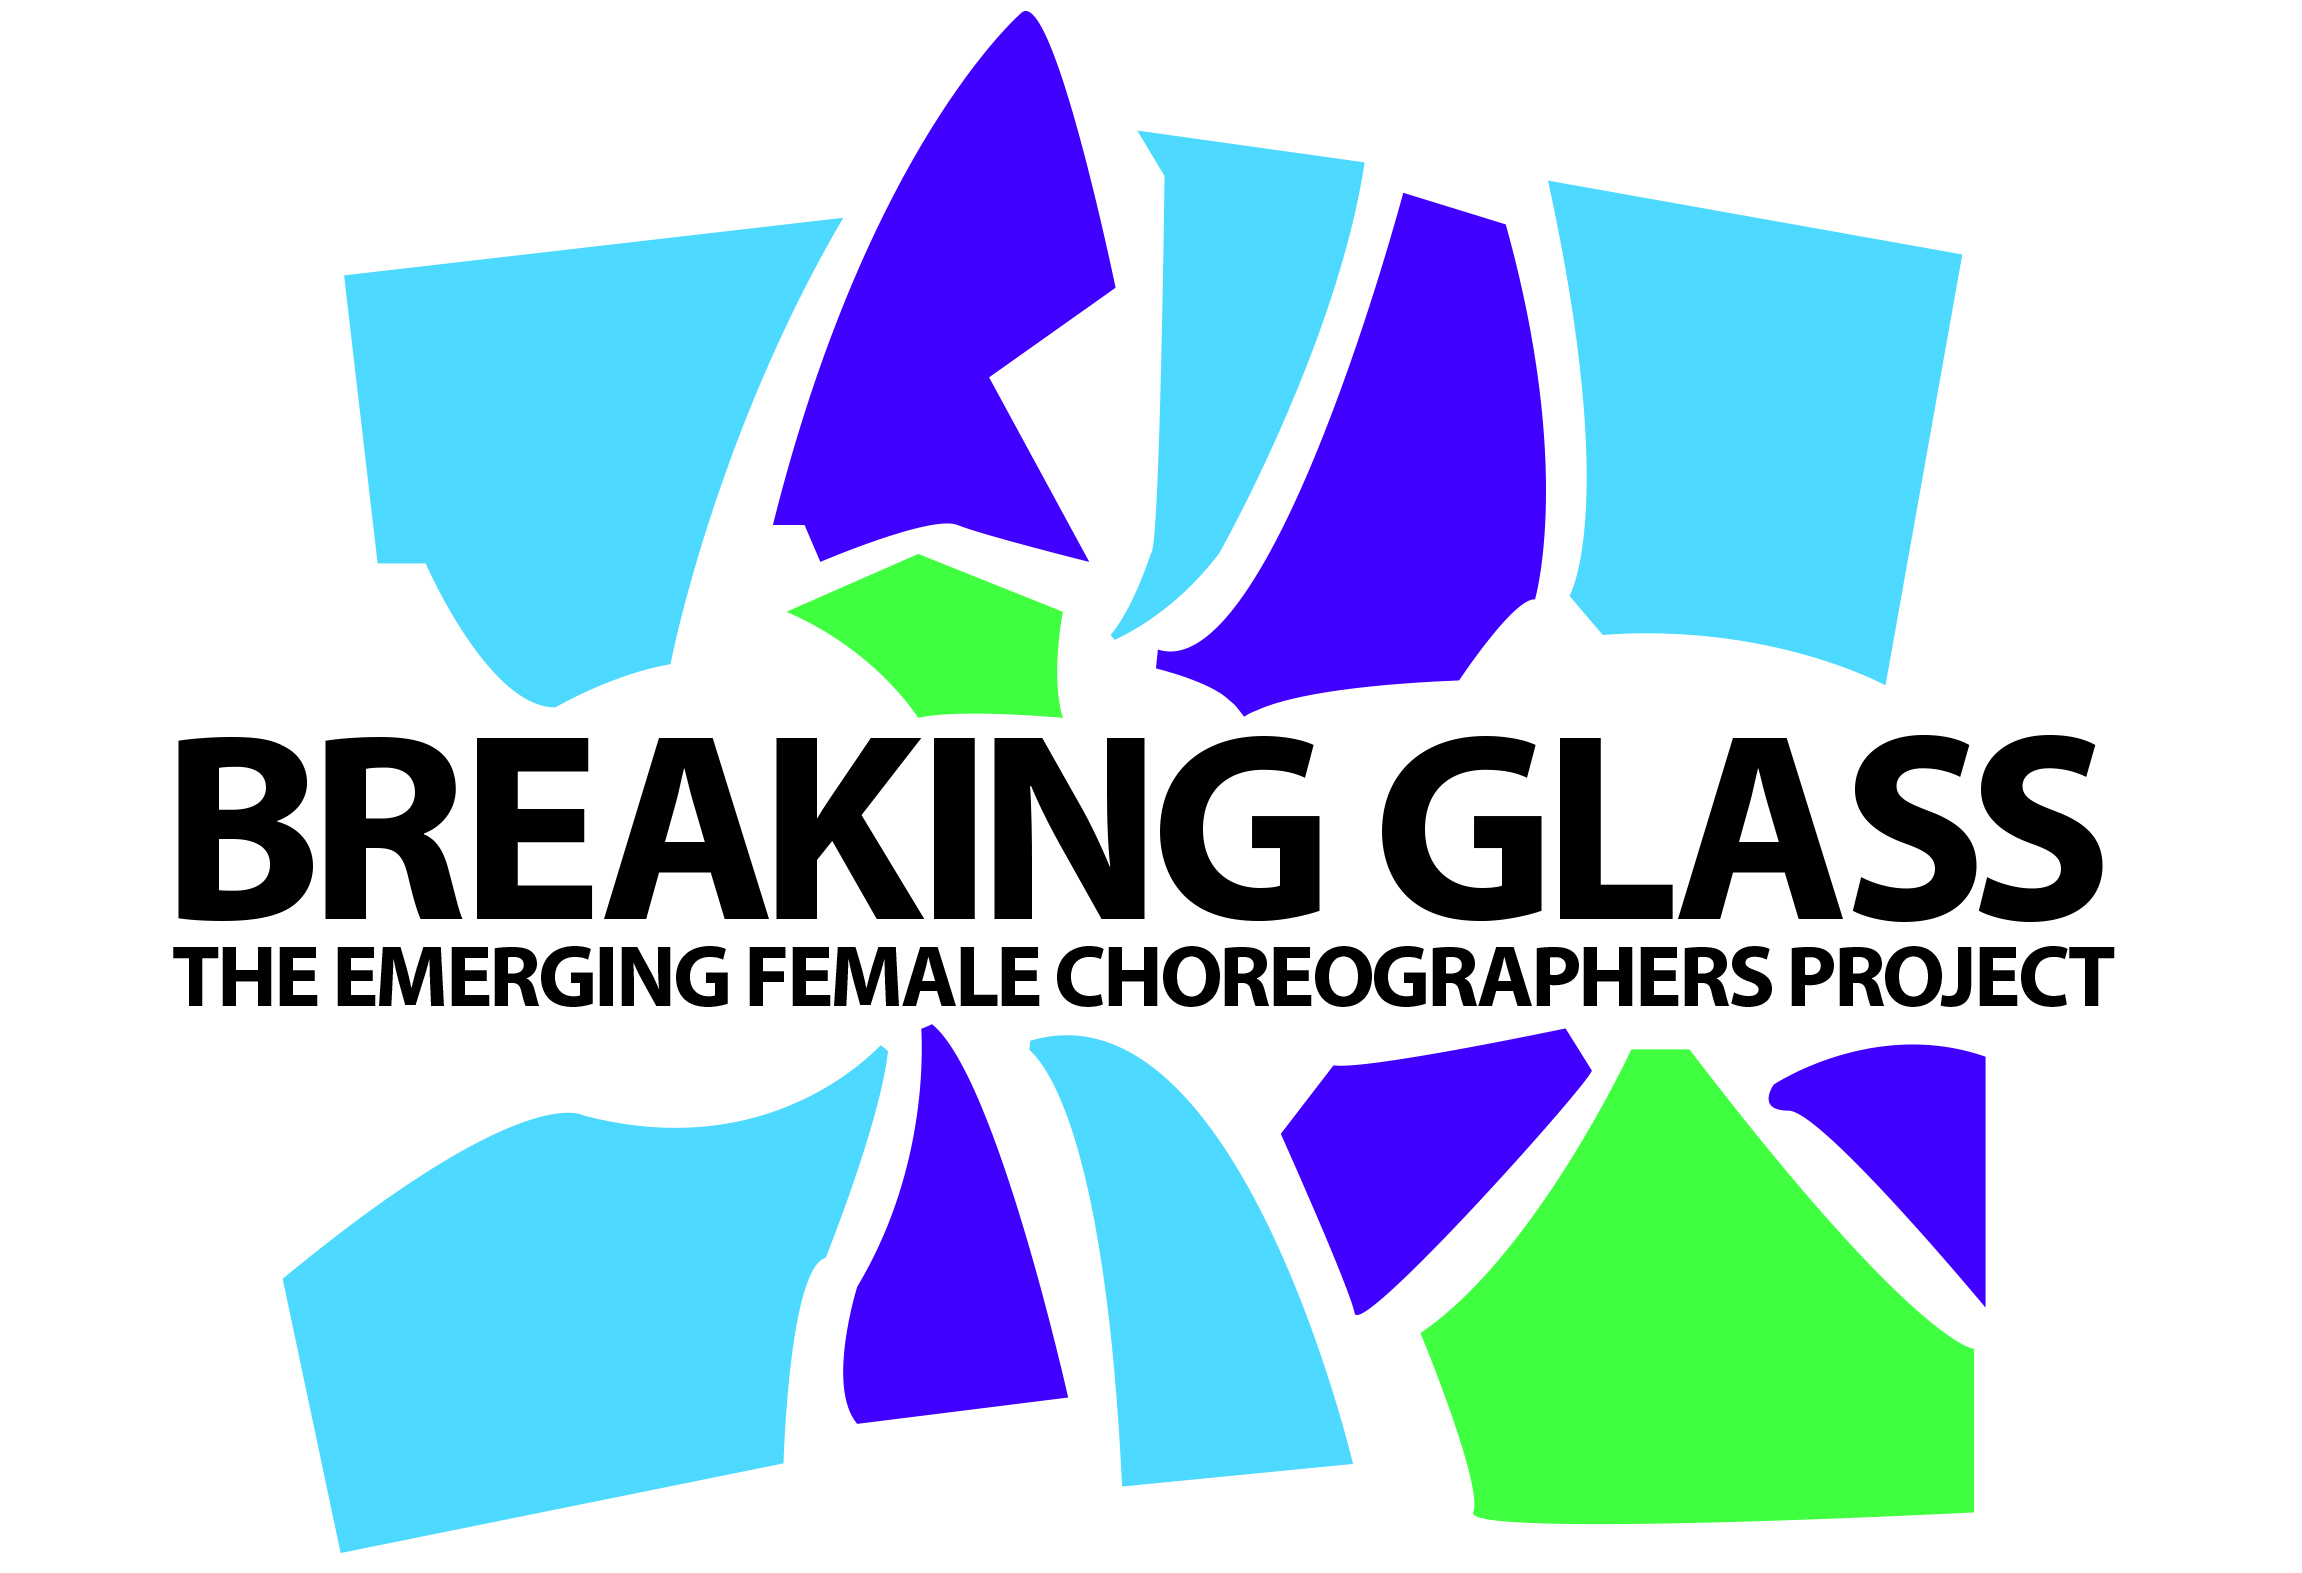 breakingglasslogo.jpg